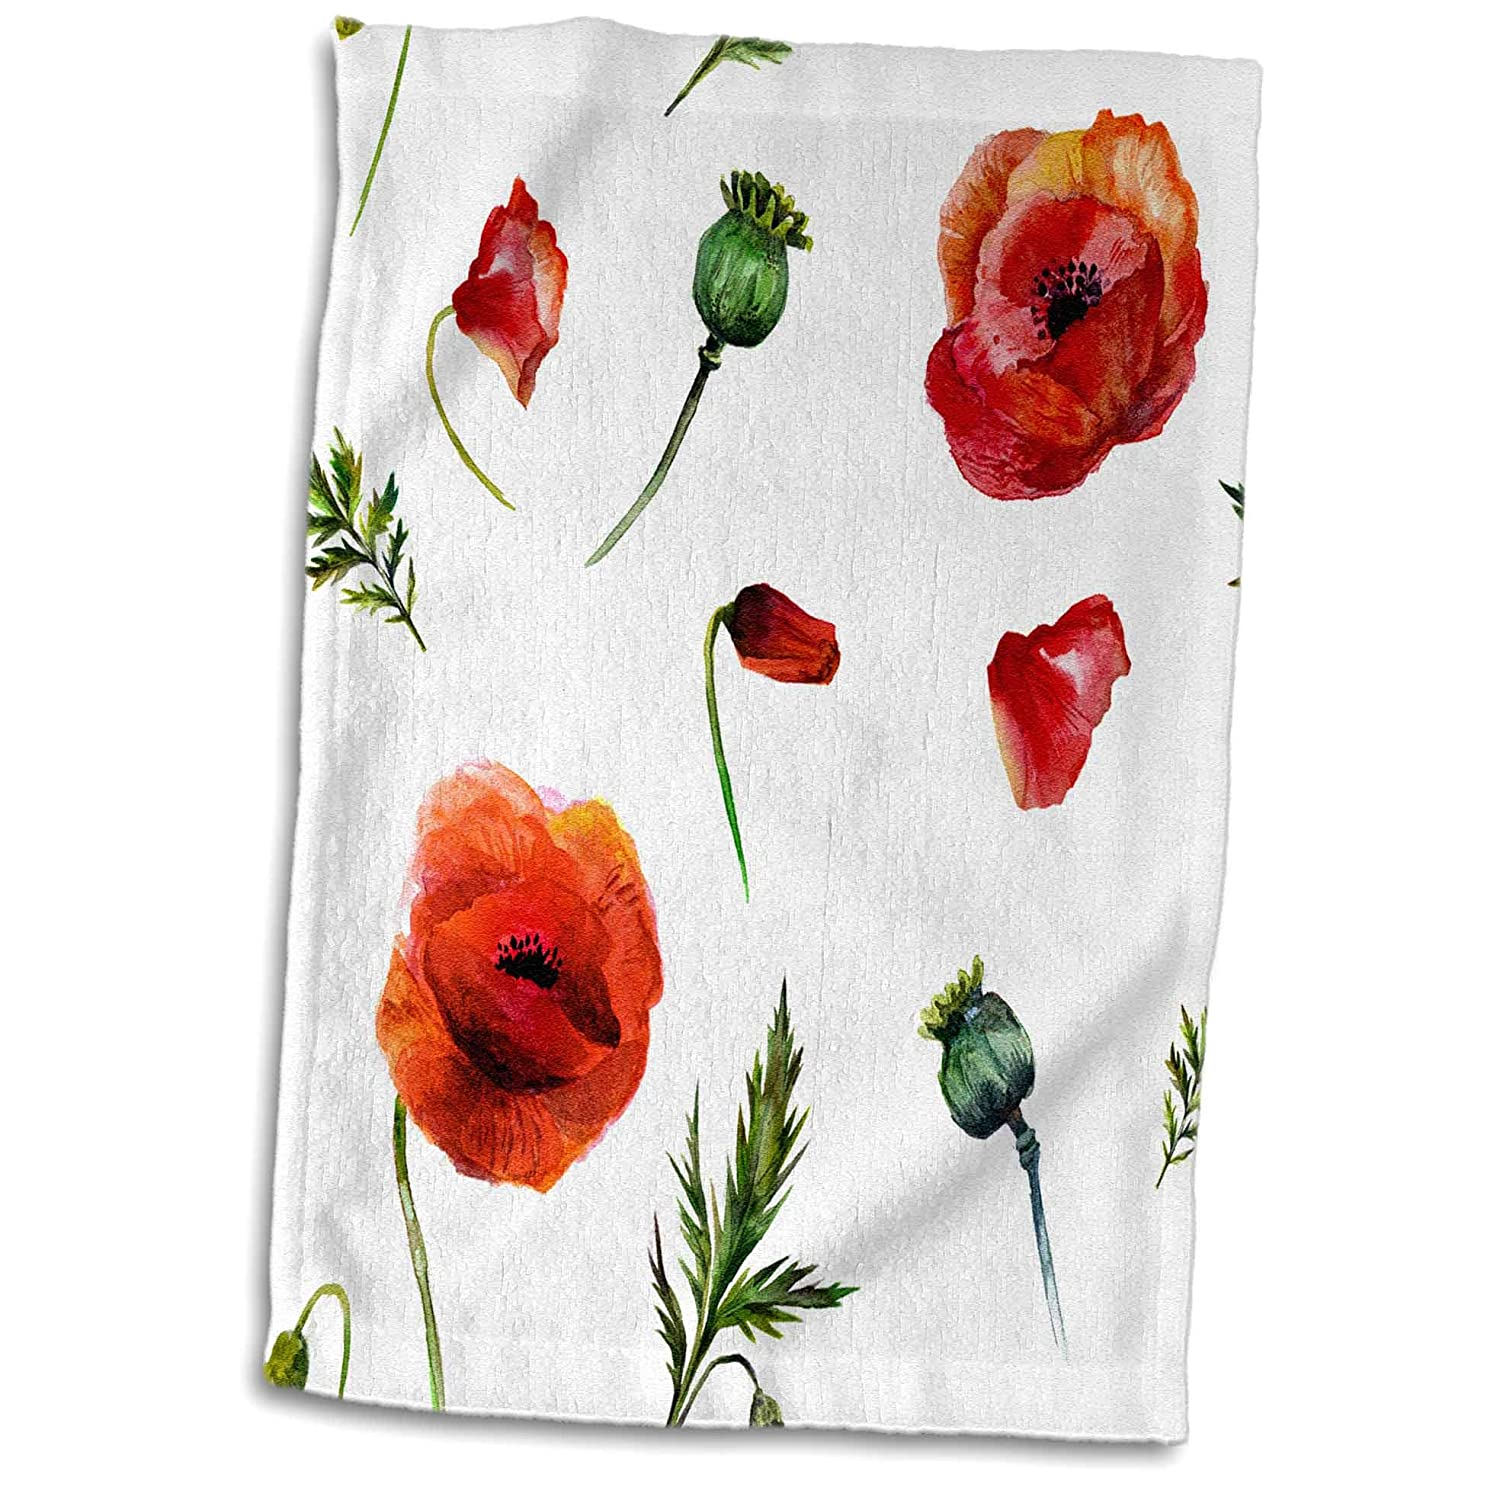 3dRose Anne Marie Baugh - Watercolor - Pretty Watercolor Red Poppy Flowers and Leaves Pattern - 15x22 Hand Towel (TWL_252886_1)